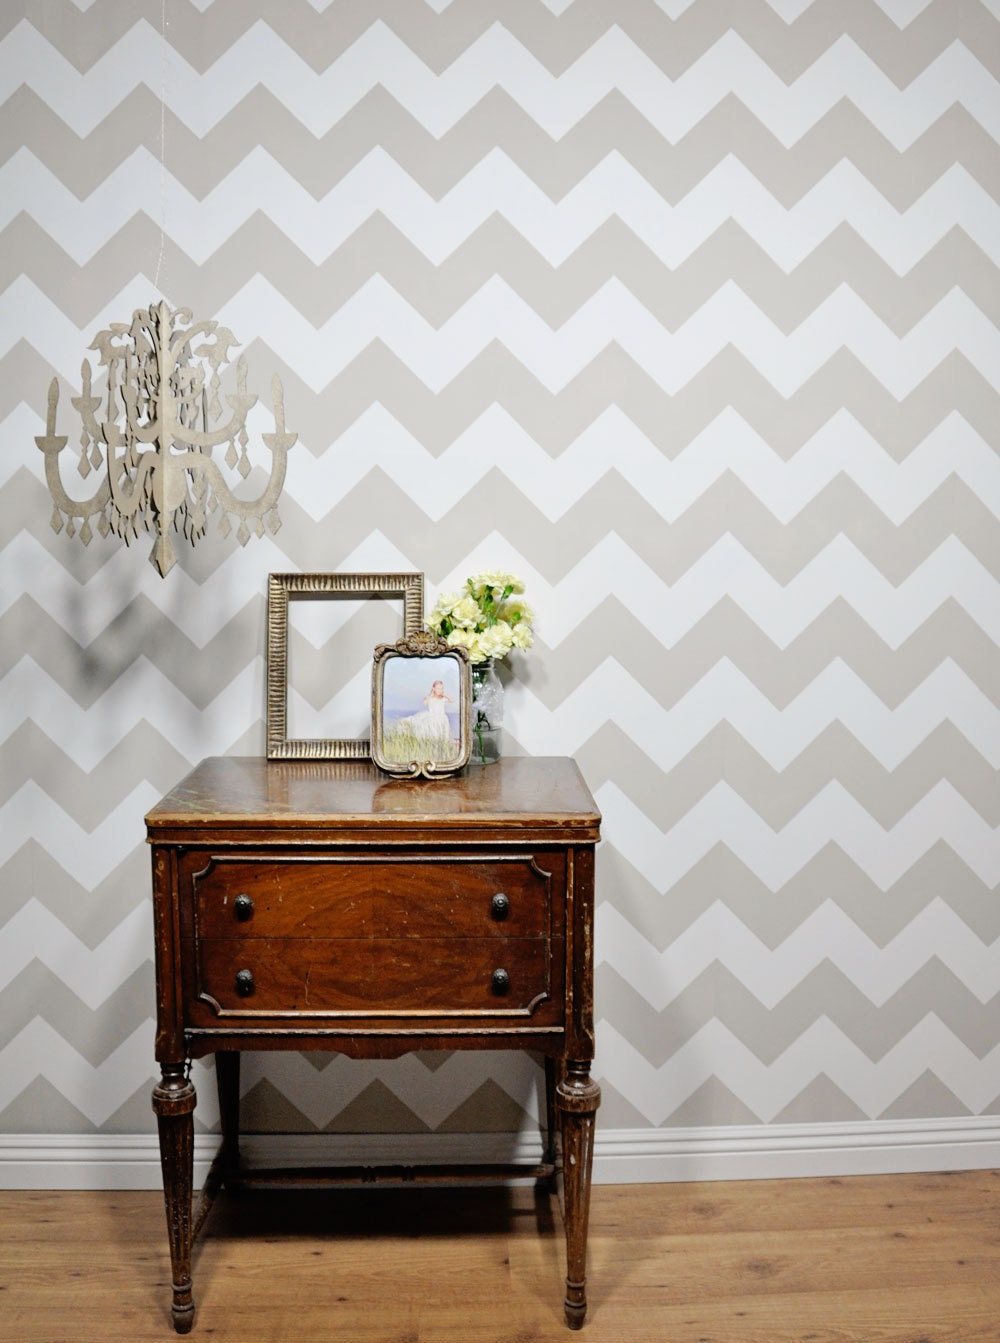 Chevron wall stencil reusable for Chevron template for walls